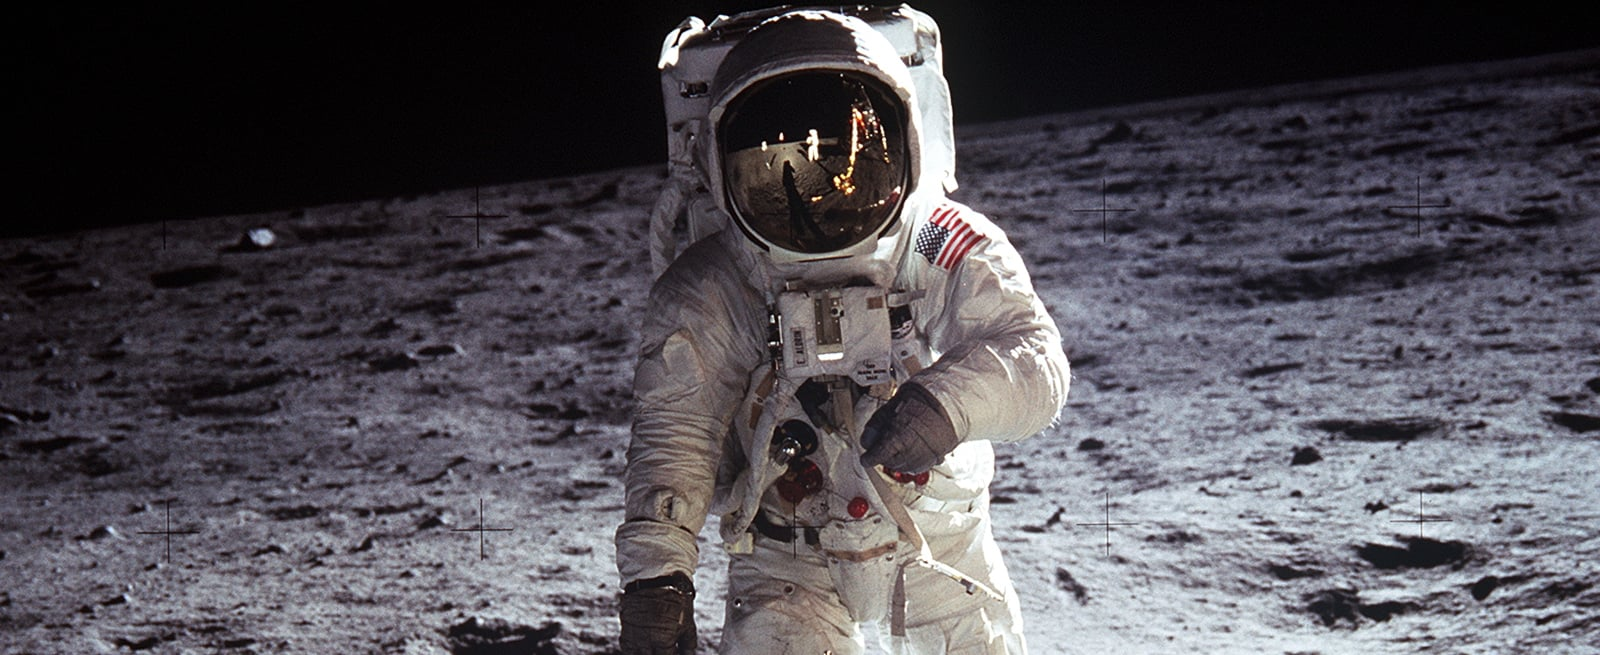 Picture of an astronaut walking on the moon